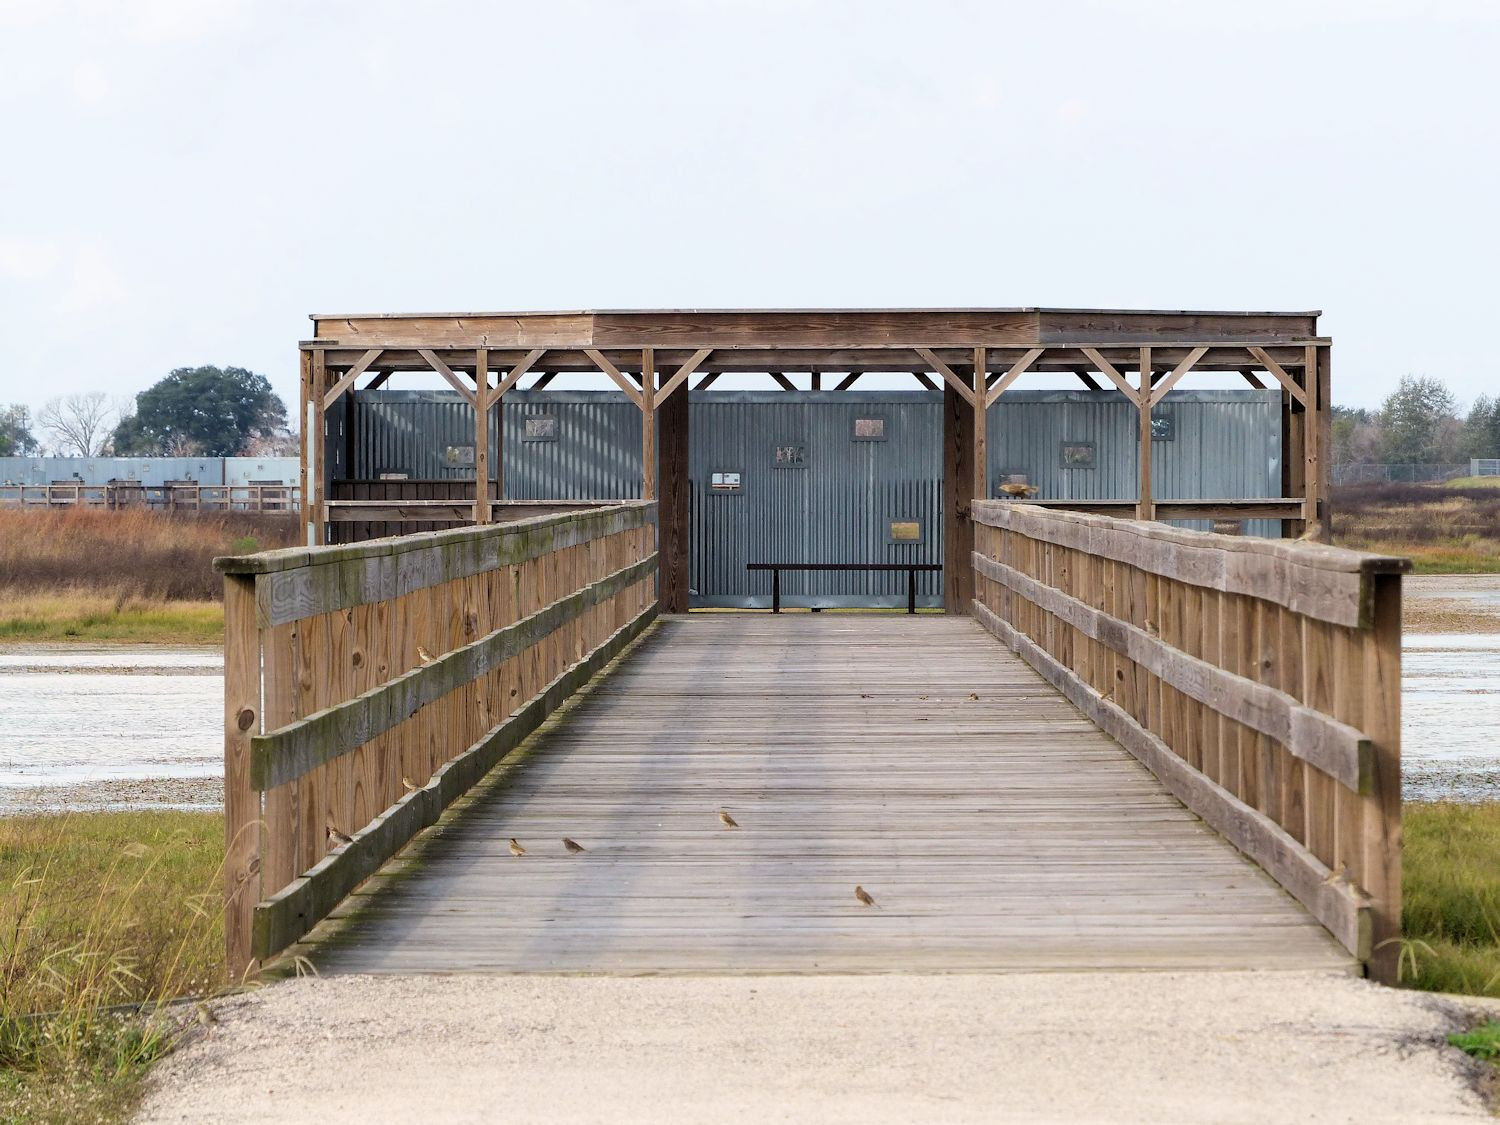 Elevated walkway out to blind (with Savannah Sparrows on the walk and rails)